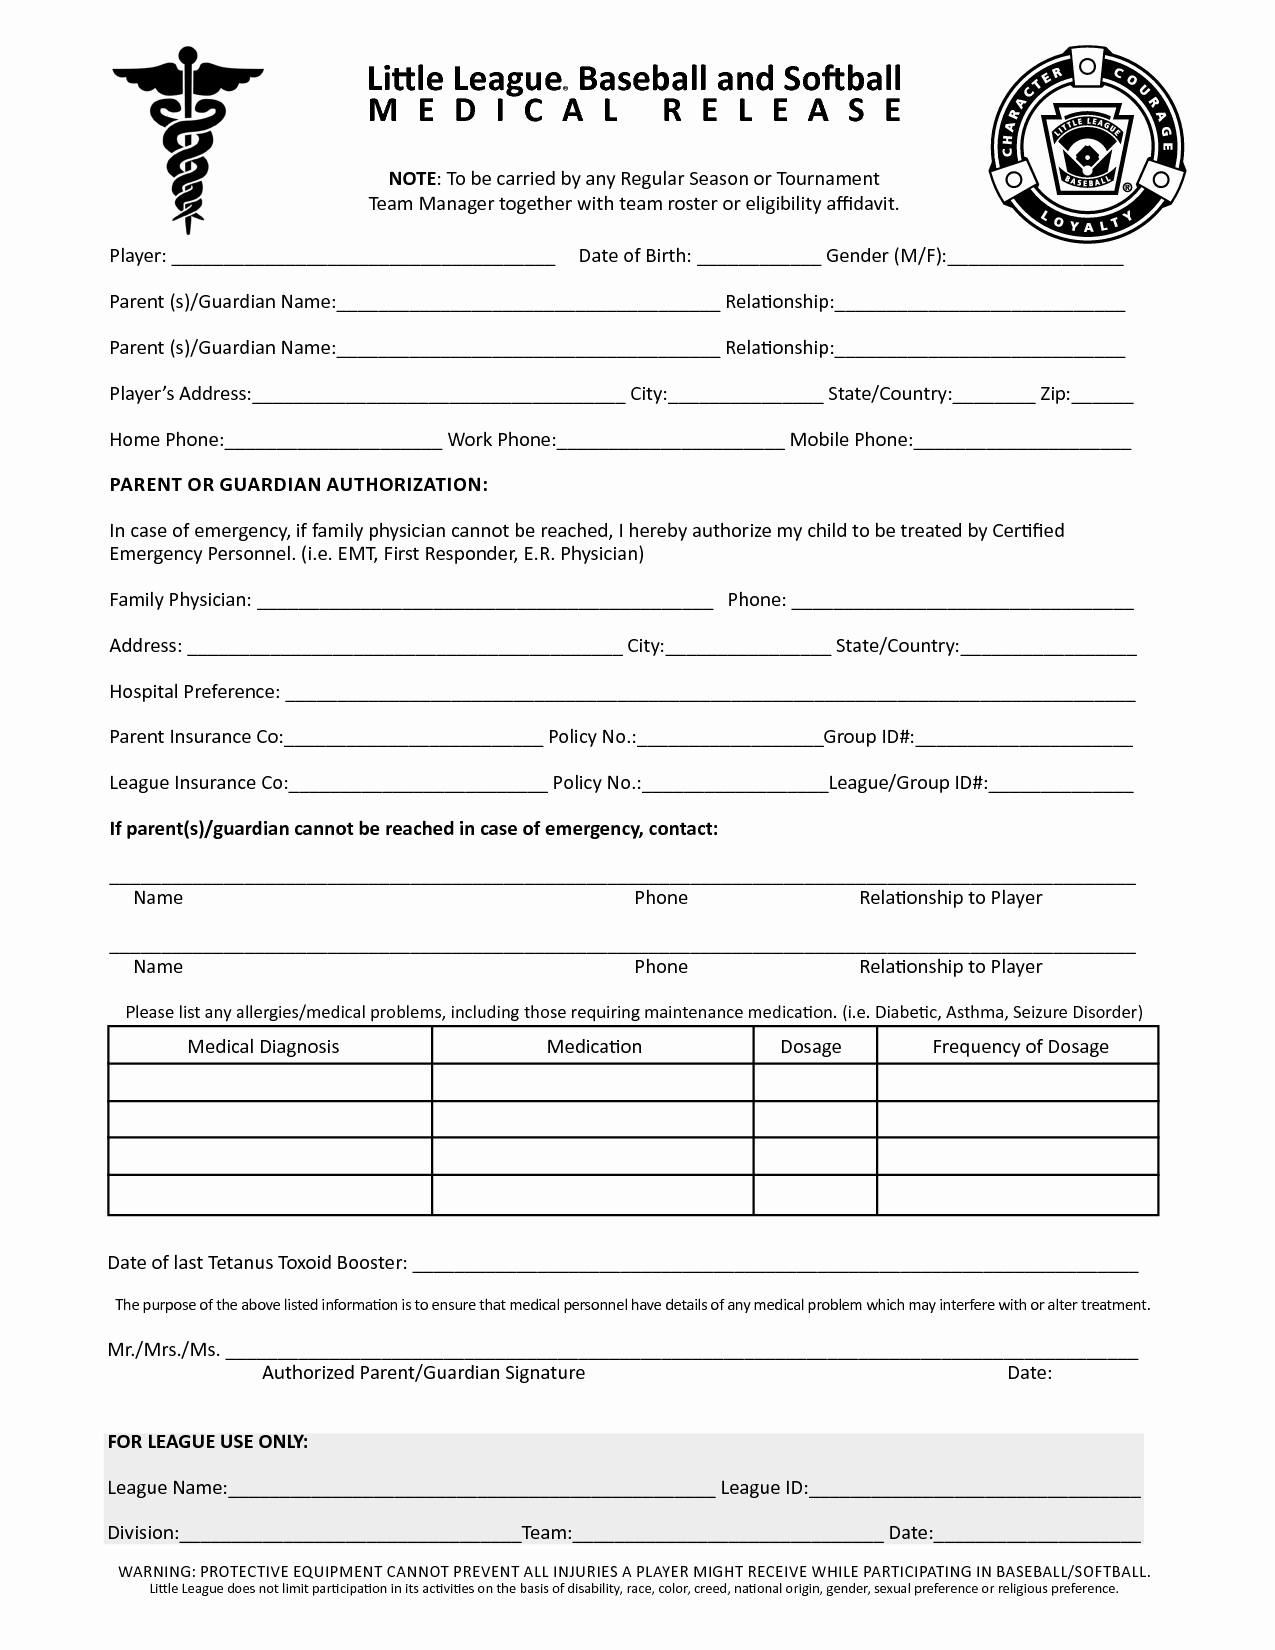 Free Printable Medical Release form New Free Printable Medical Release forms